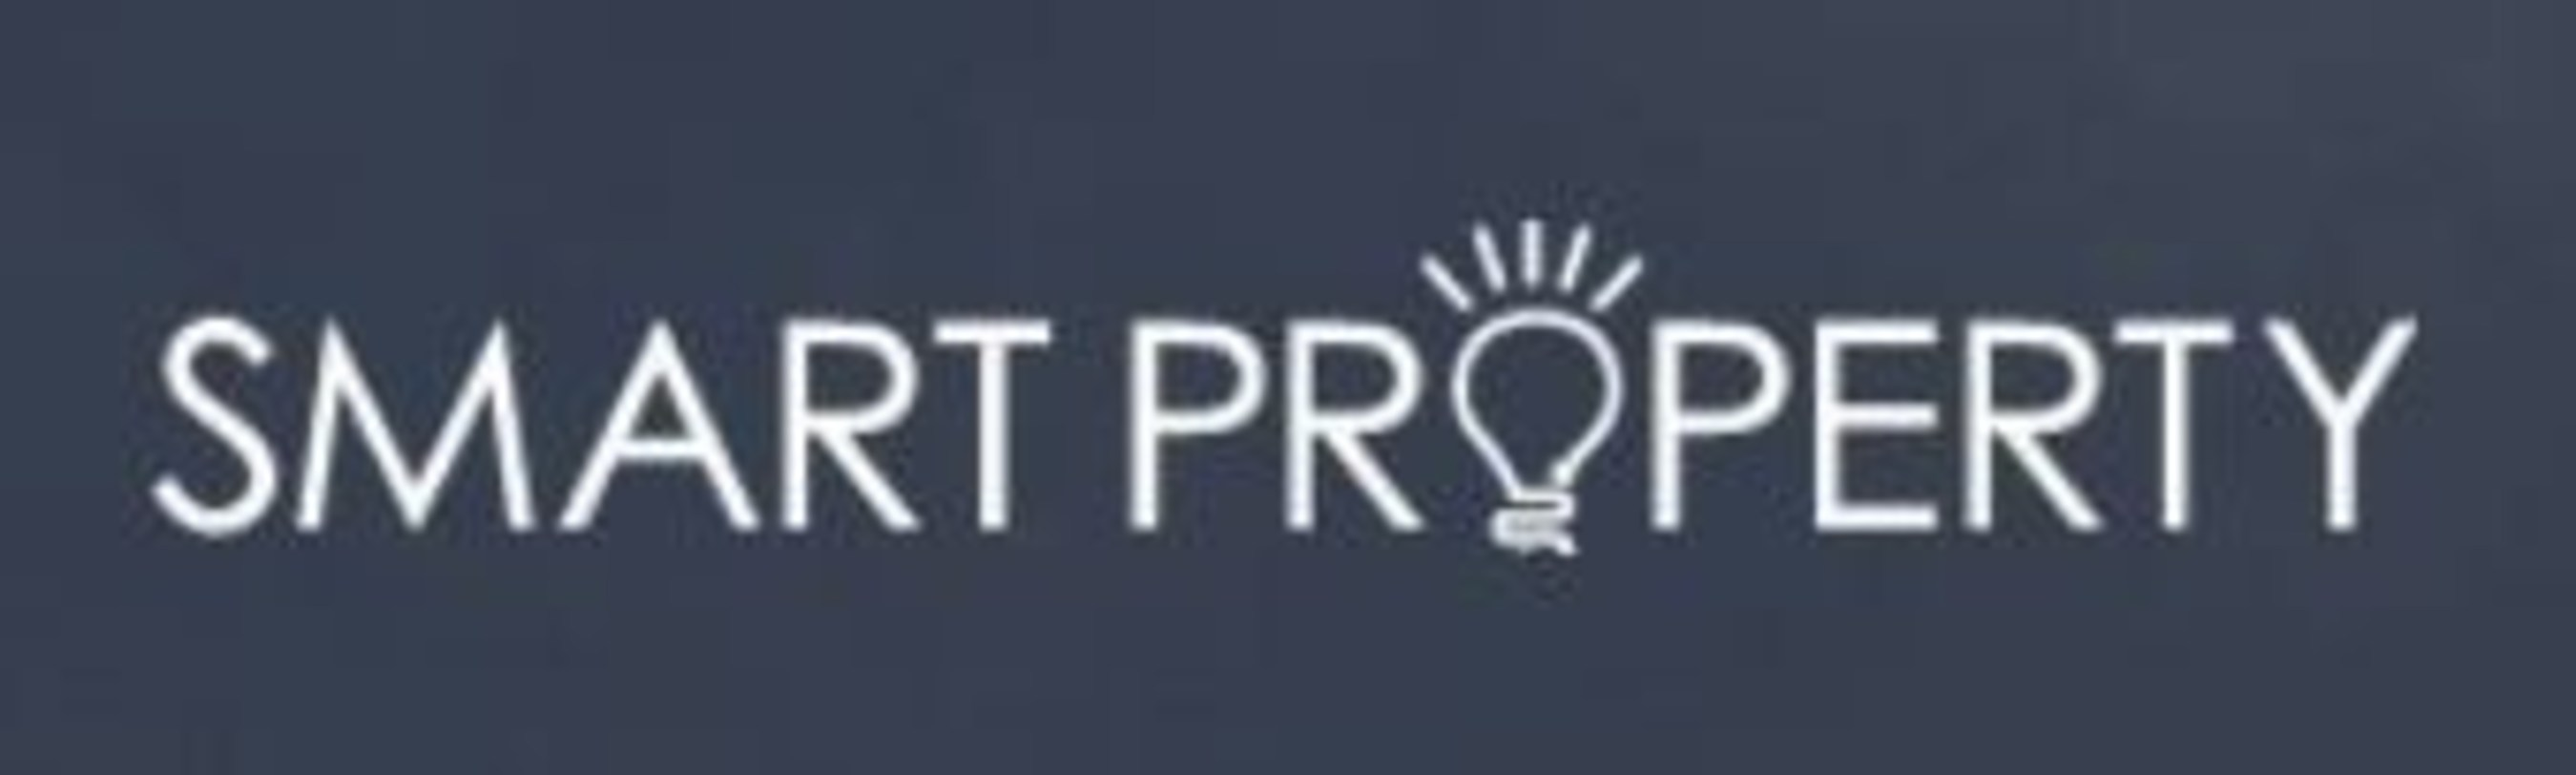 Property Investment Provider Smart Property Announces its Launch